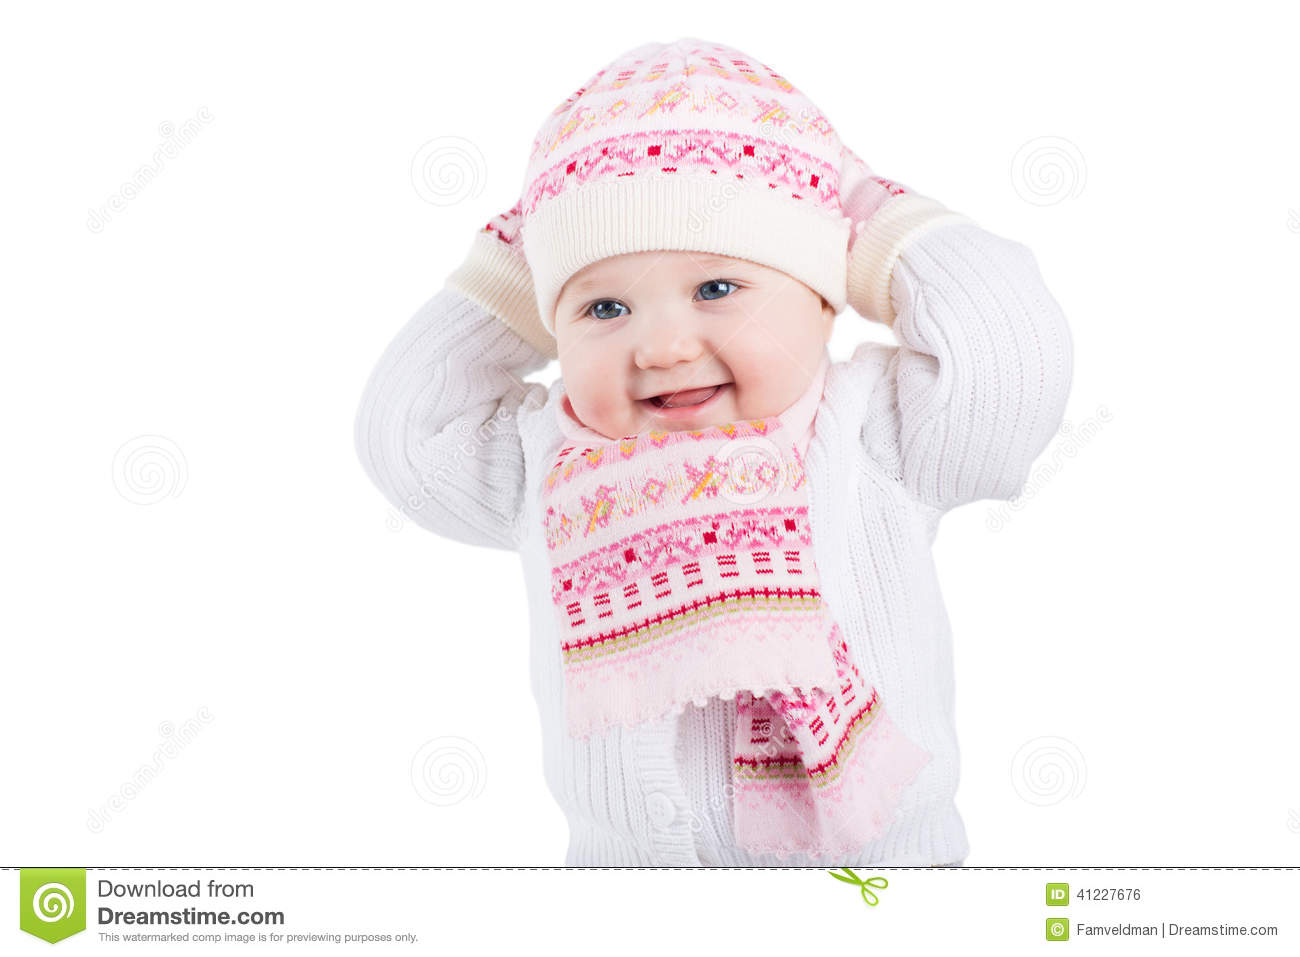 ... Girl In A Knitted Hat, Scarf And Mitten Stock Photo - Image: 41227676